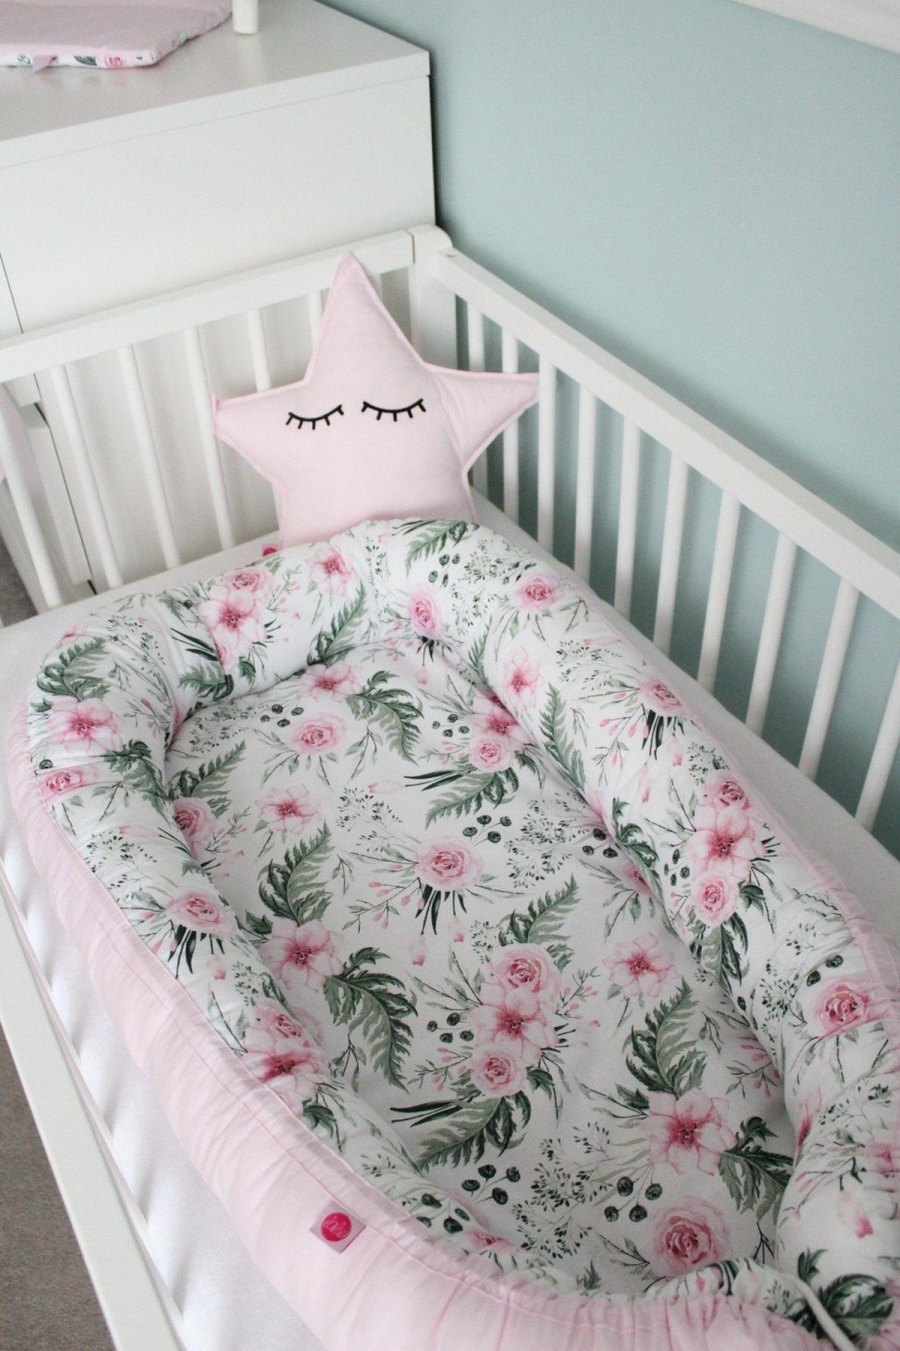 A baby nest is one of the best ways to get a newborn baby used to sleeping in his cot. It is difficult for newborns who have just left a cramped, cozy environment to adapt to relaxing in a cradle, a place opposite to what they are used to.